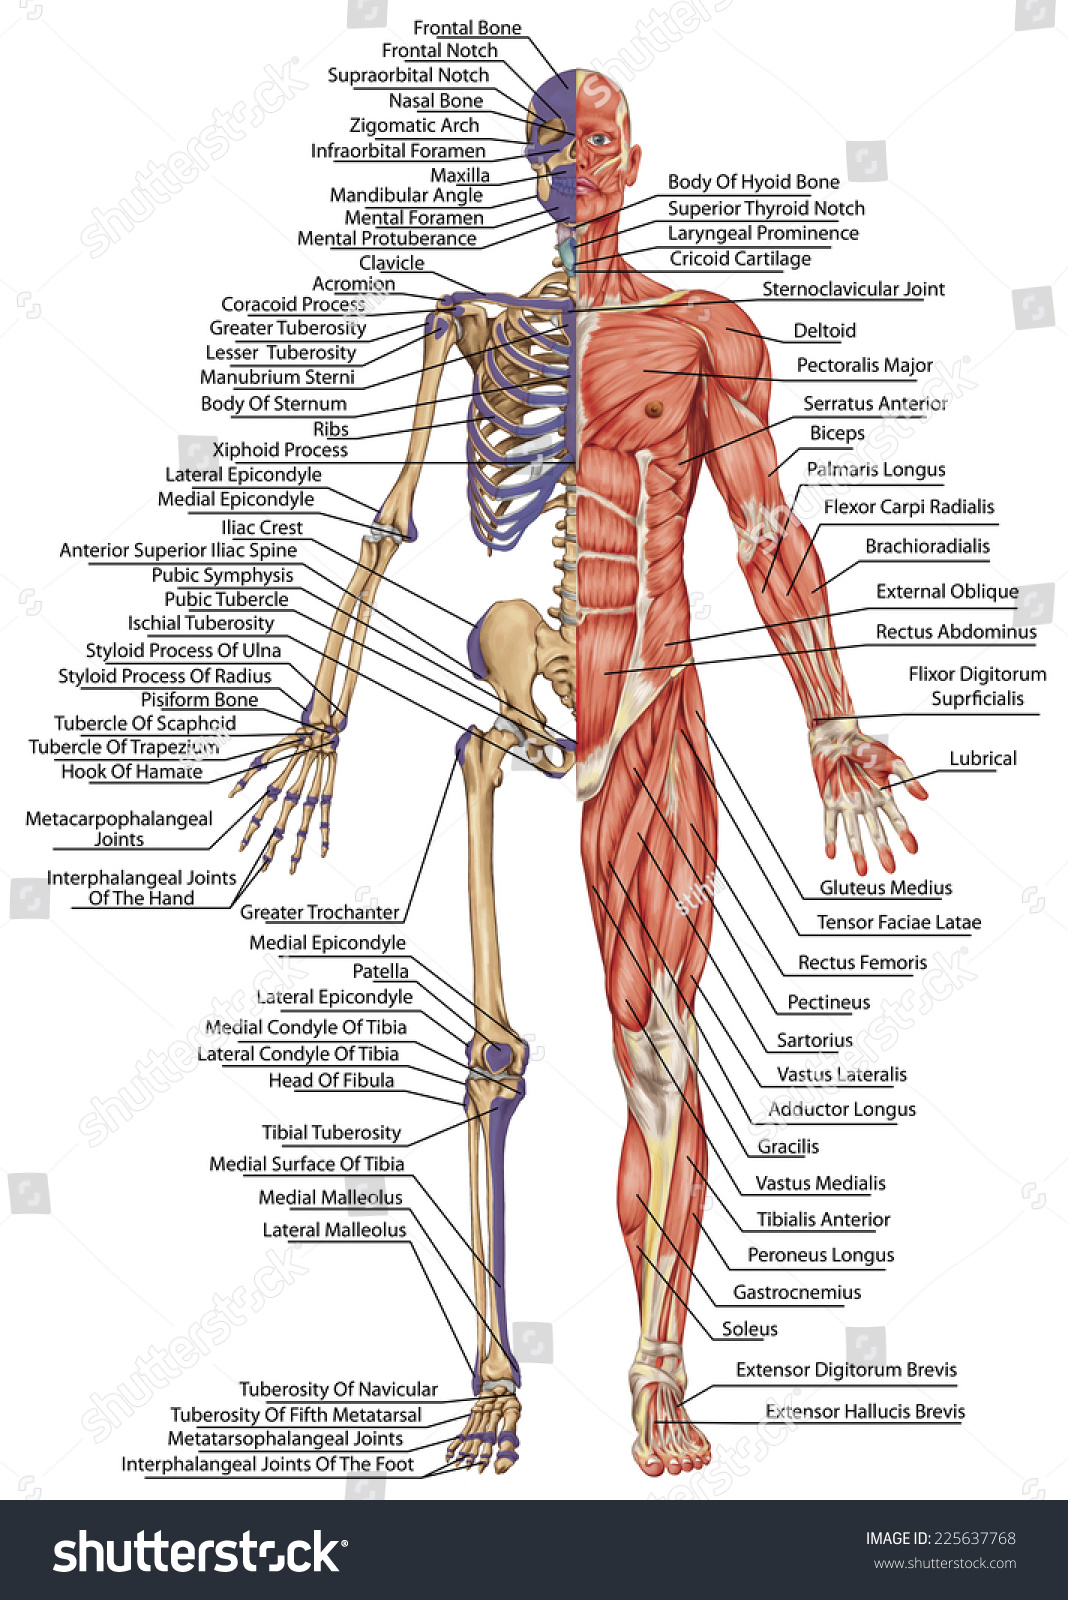 Anatomical Body Human Skeleton Anatomy Of Human Bony System Body Surface Contour And Palpable